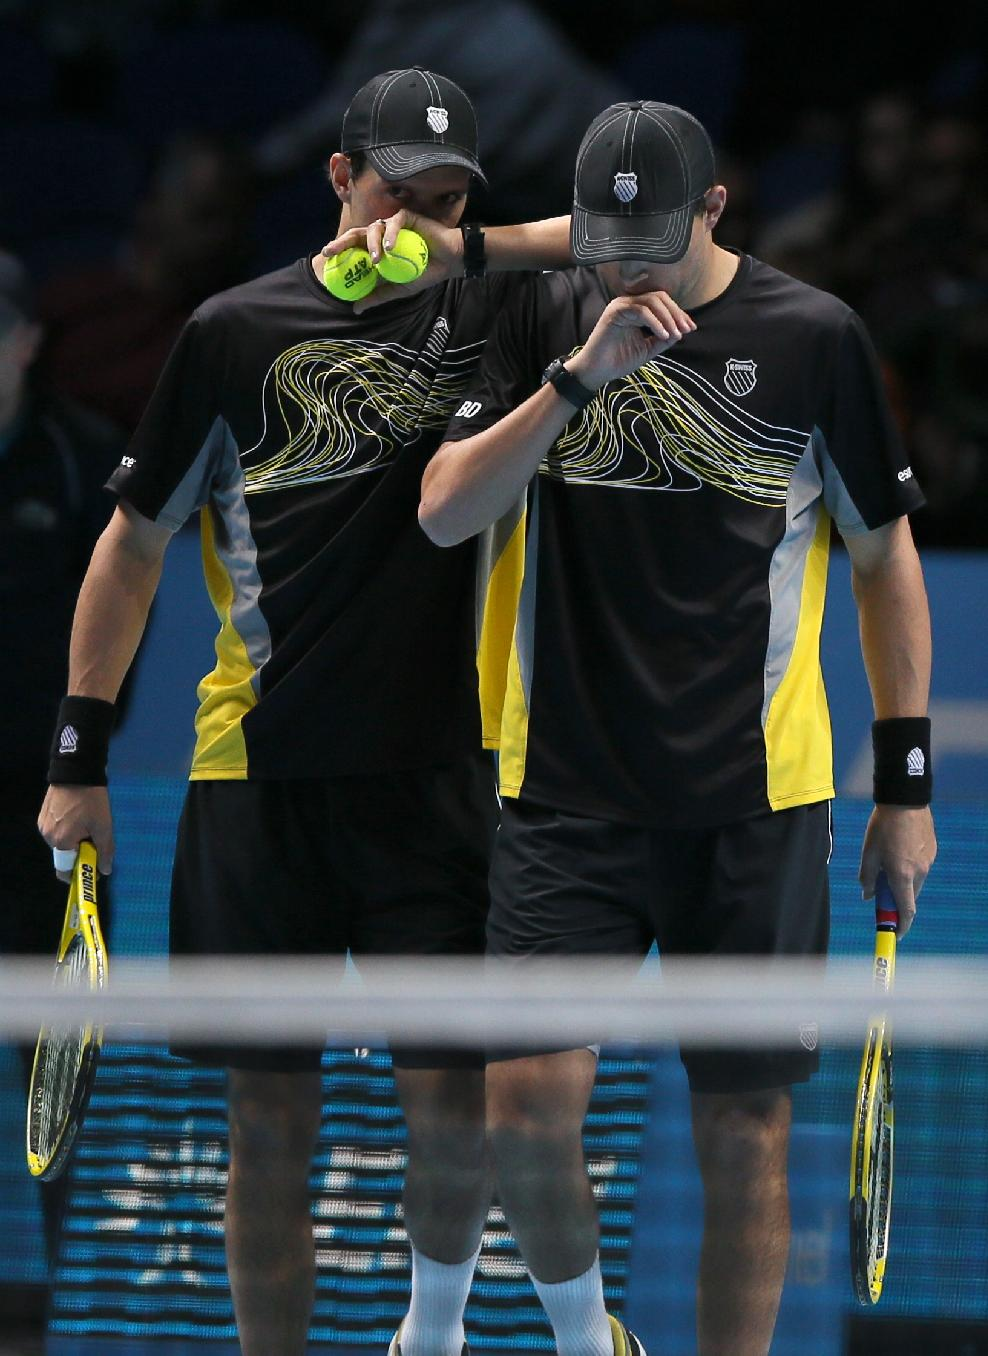 Bob Bryan of the United States, right, and Mike Bryan of the United States talk after they play a return to Mariusz Fyrstenberg of Poland and Marcin Matkowski of Poland during their ATP World Tour Finals tennis match at the O2 Arena in London, Saturday, Nov. 9, 2013